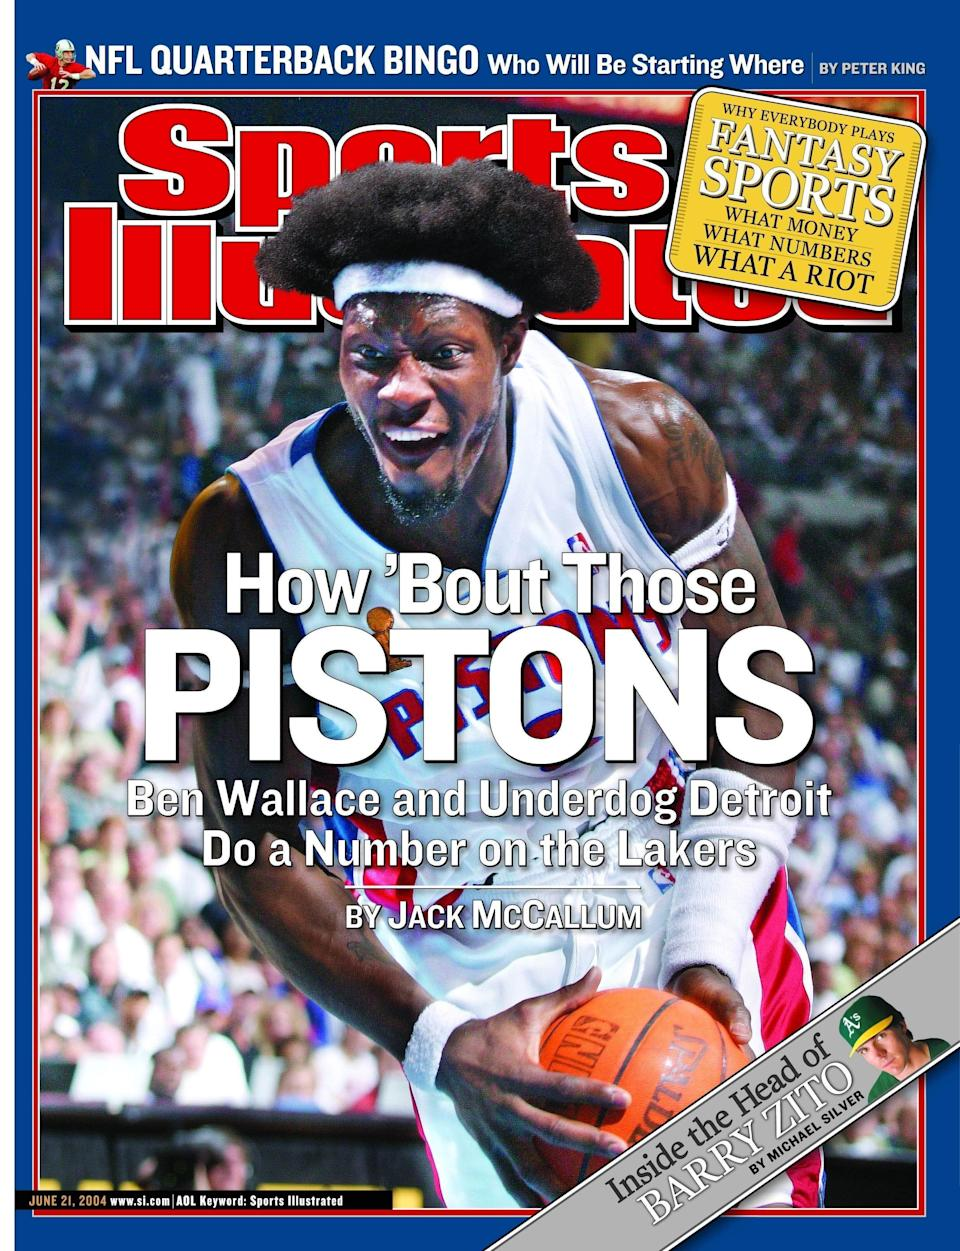 The Pistons' Ben Wallace was on the cover of Sports Illustrated on June 21, 2004, after taking down the Los Angeles Lakers in five games in the NBA Finals.